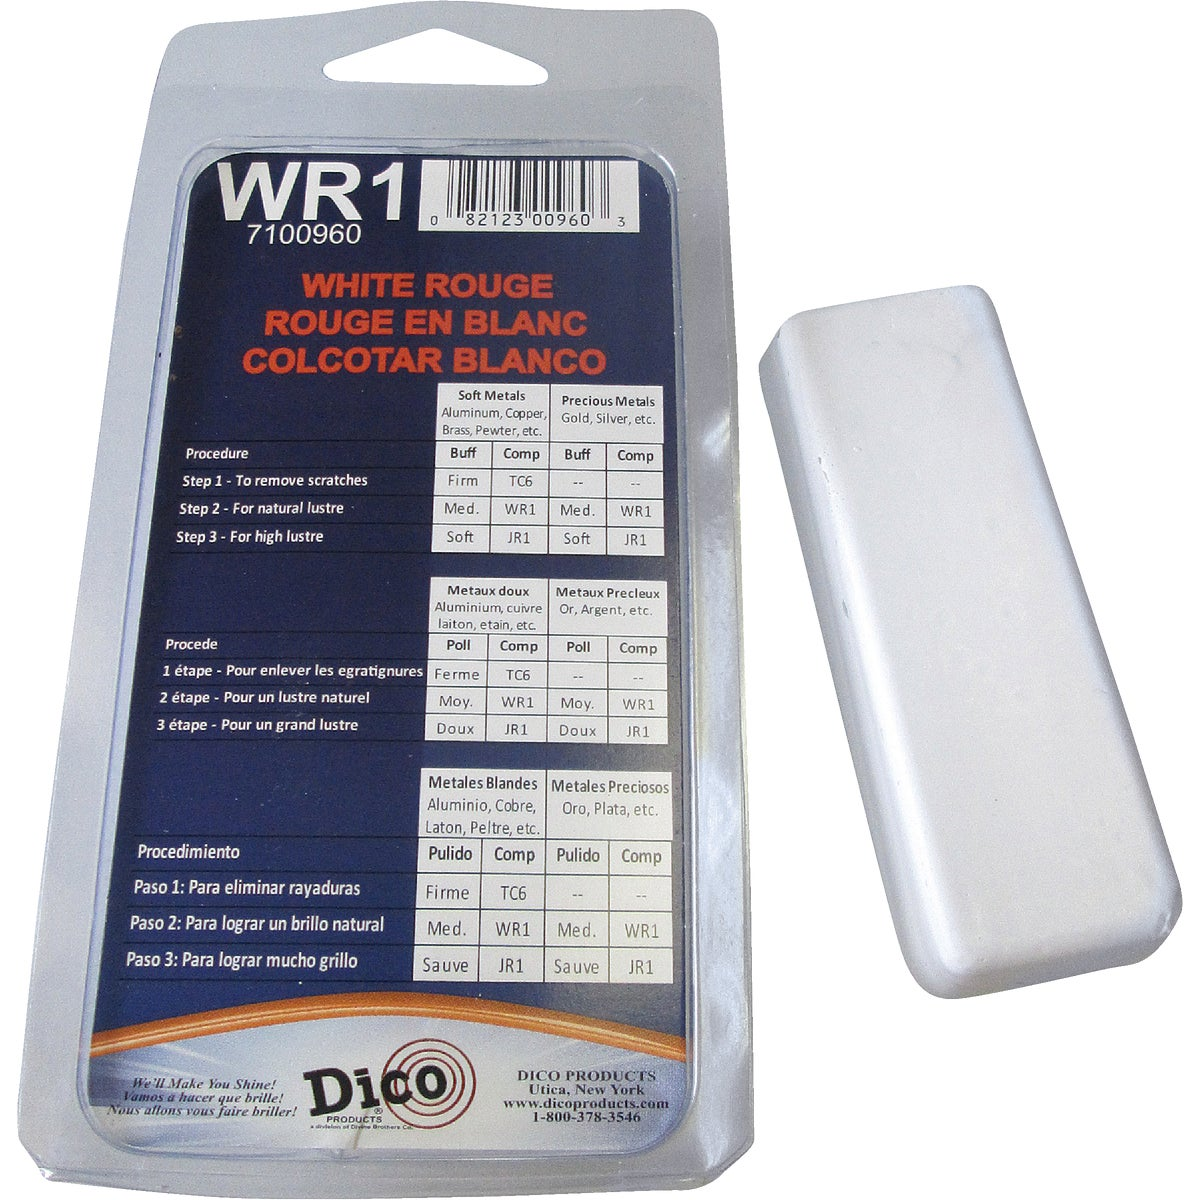 WHITERG BUFFING COMPOUND - 531WR1 by Dico Products Corp